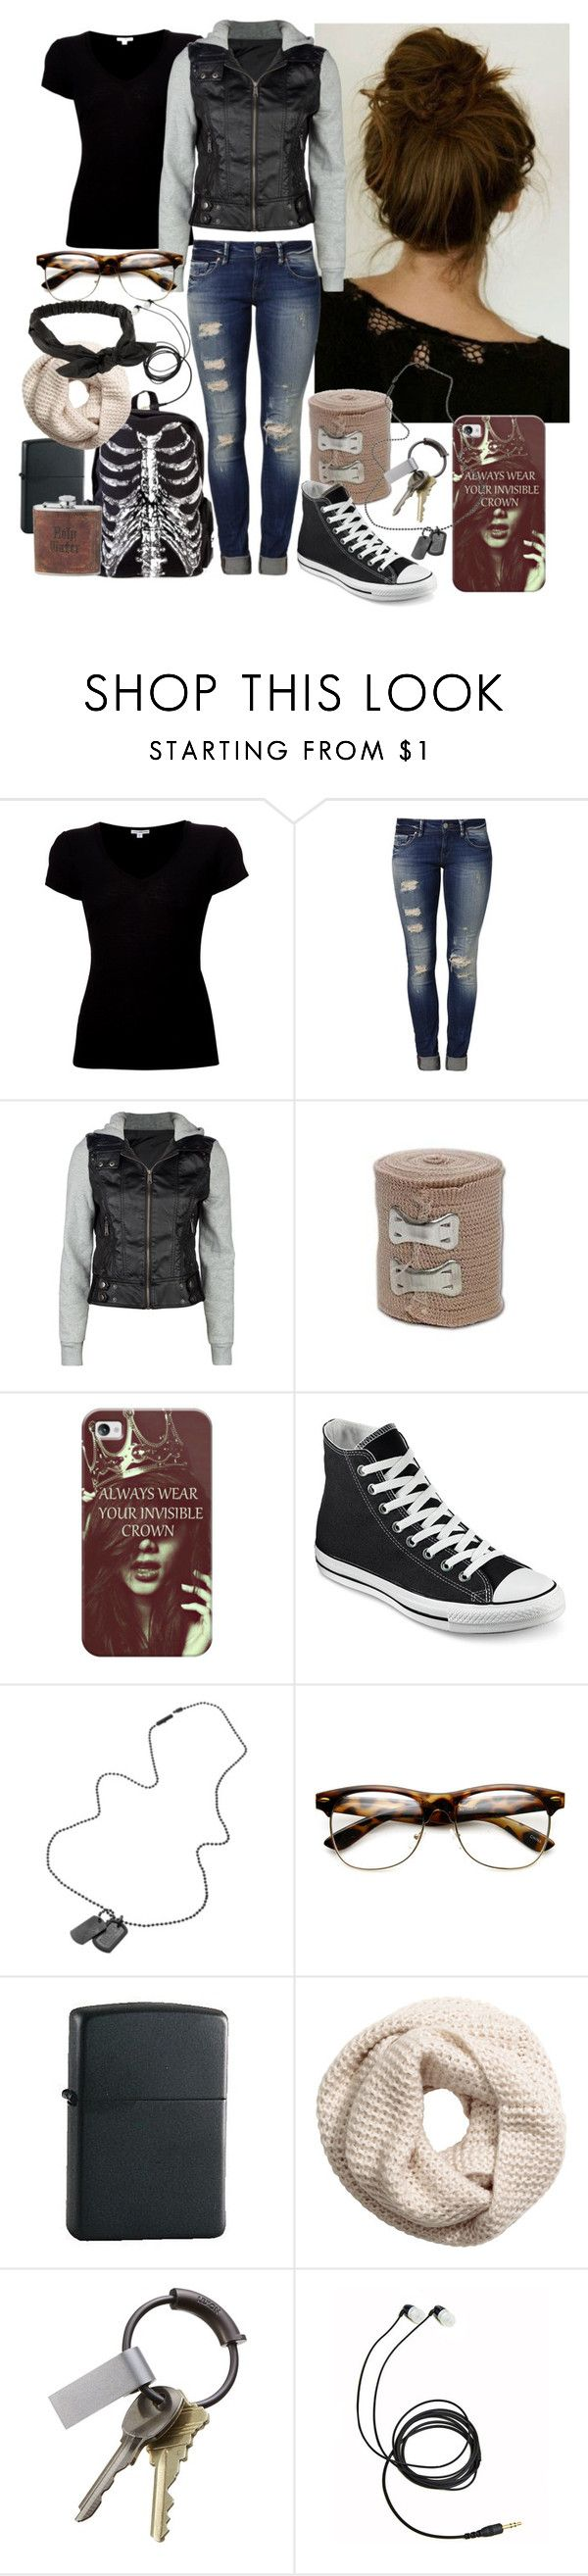 """""""School Look"""" by smash22 ❤ liked on Polyvore featuring James Perse, Mavi, Full Tilt, Casetify, Converse, Diesel, Zippo, H&M, CB2 and NLY Accessories"""